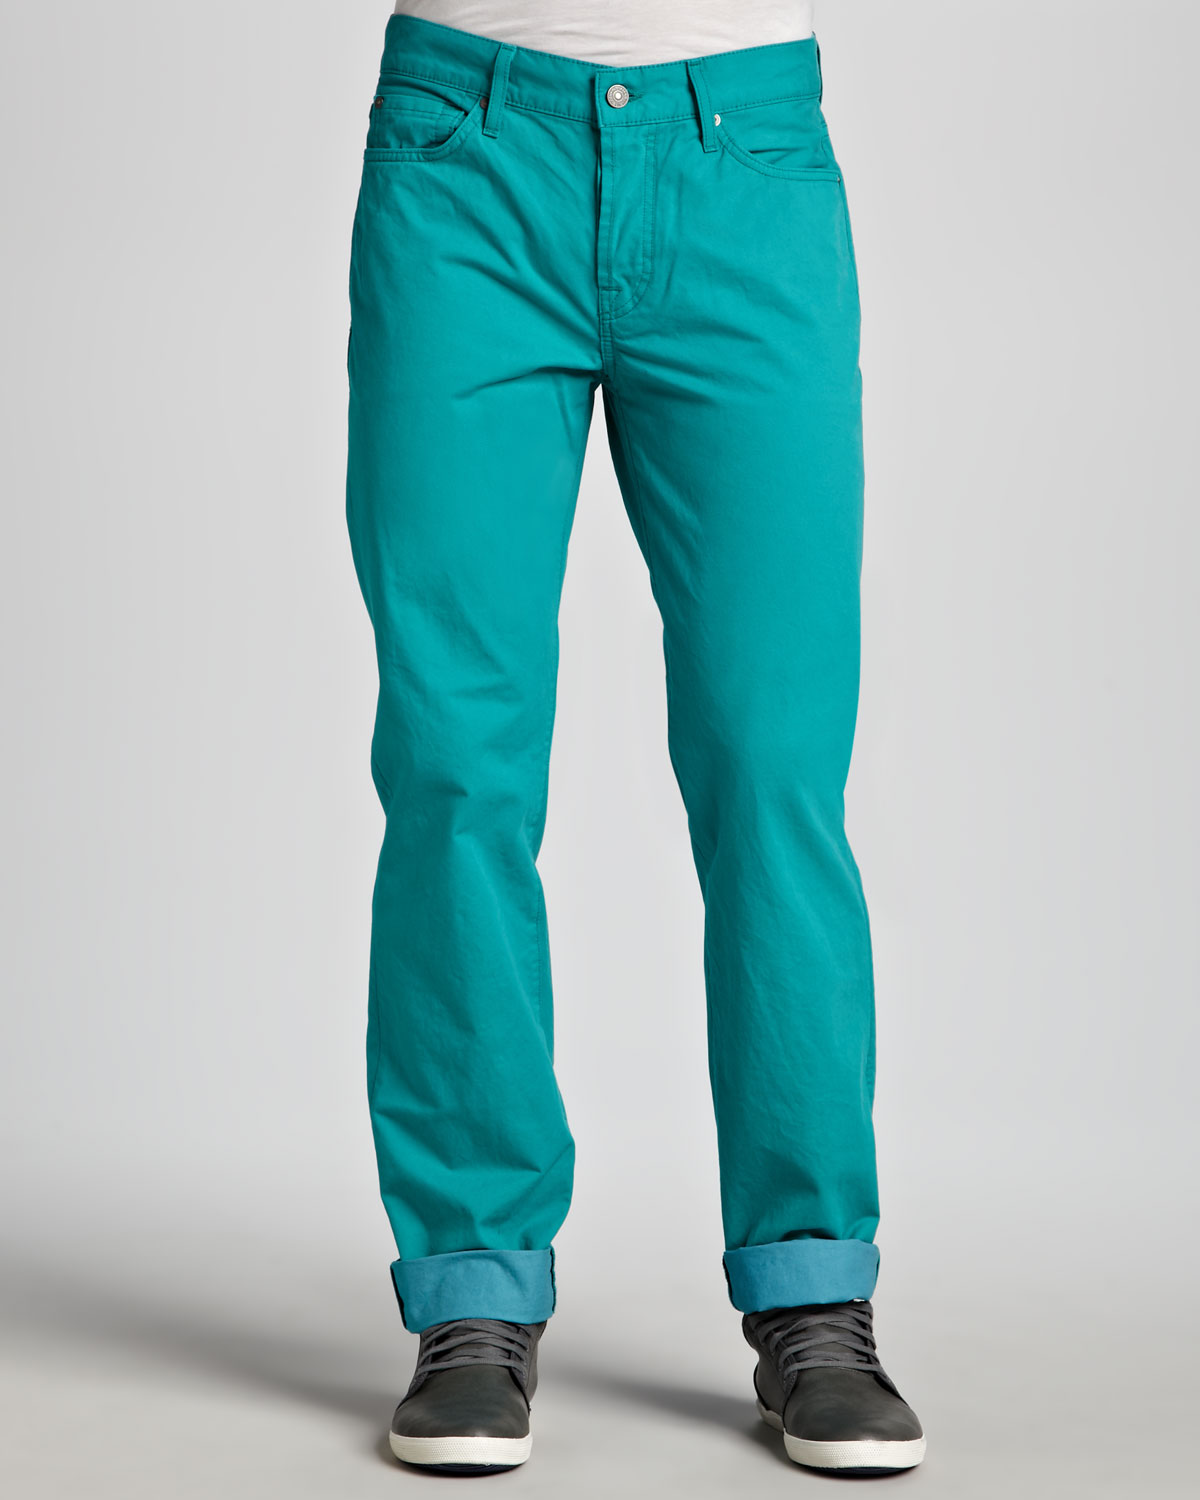 Find mens turquoise pants at ShopStyle. Shop the latest collection of mens turquoise pants from the most popular stores - all in one place.